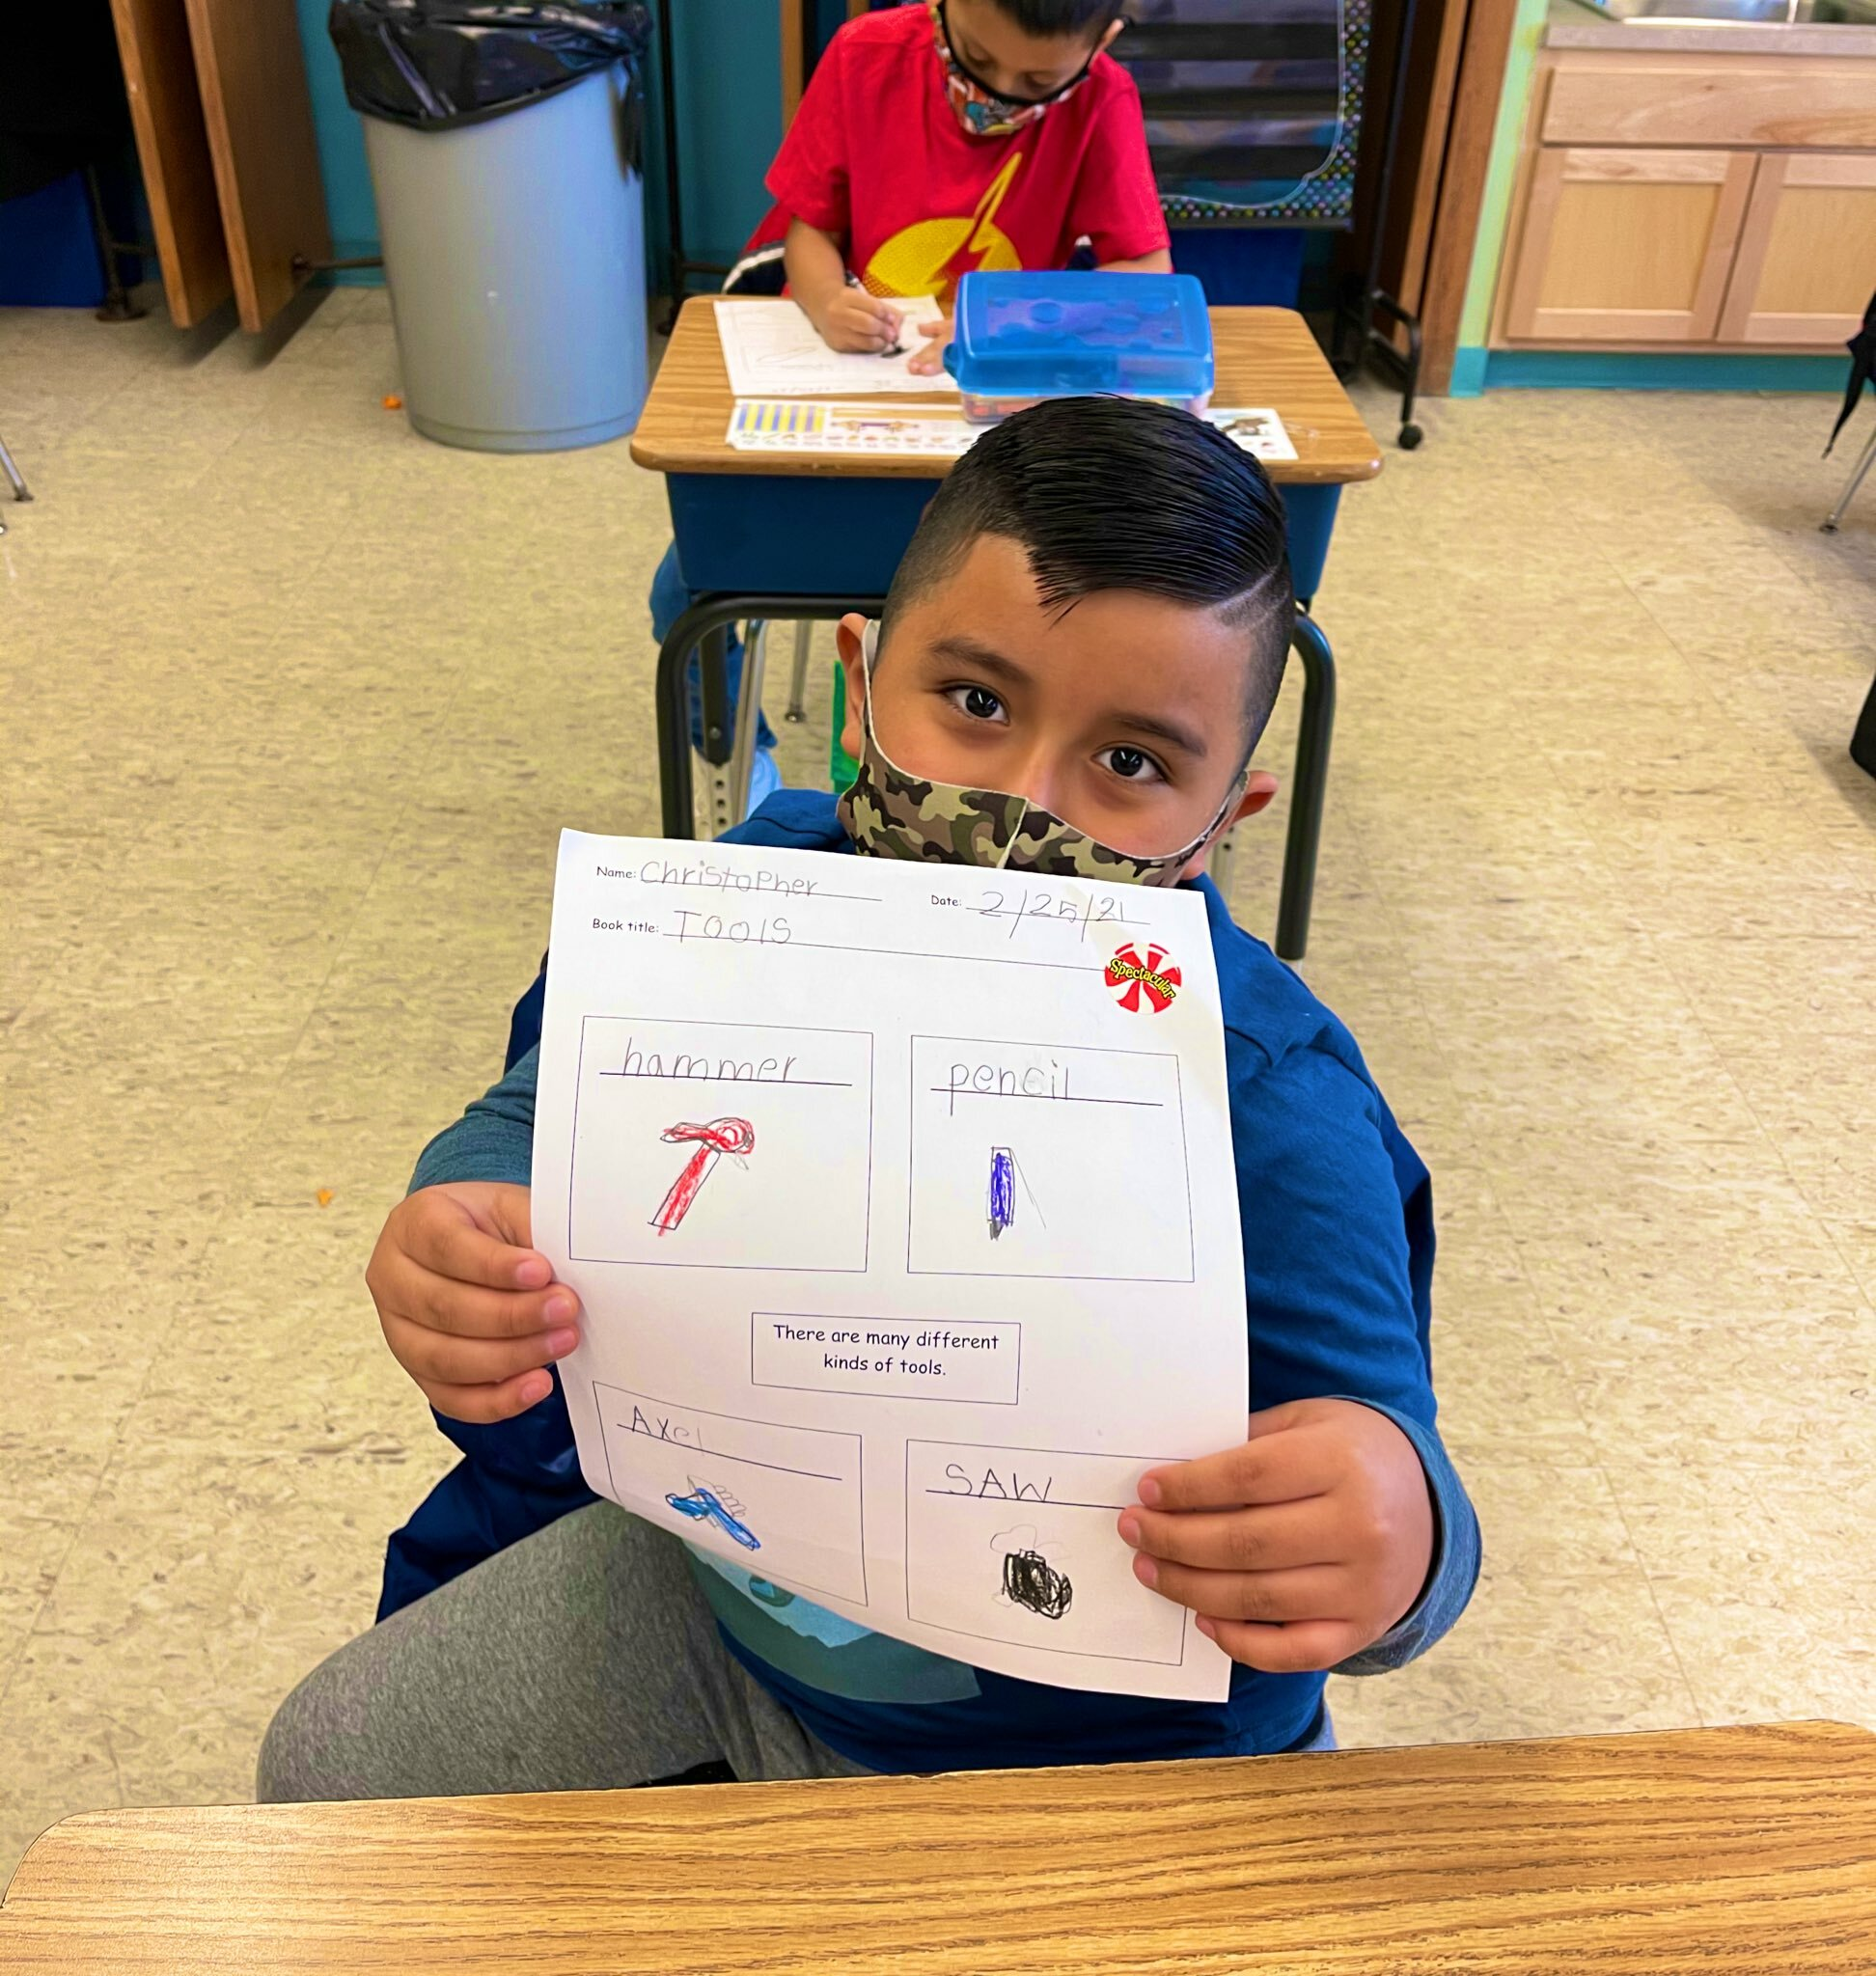 As part of a nonfiction reading unit, Lauren Mikelinich's first graders at Hampton Bays Elementary School recently learned about different tools and how they are used around the world. The students took part in a number of activities, including drawing and writing about the various tools.